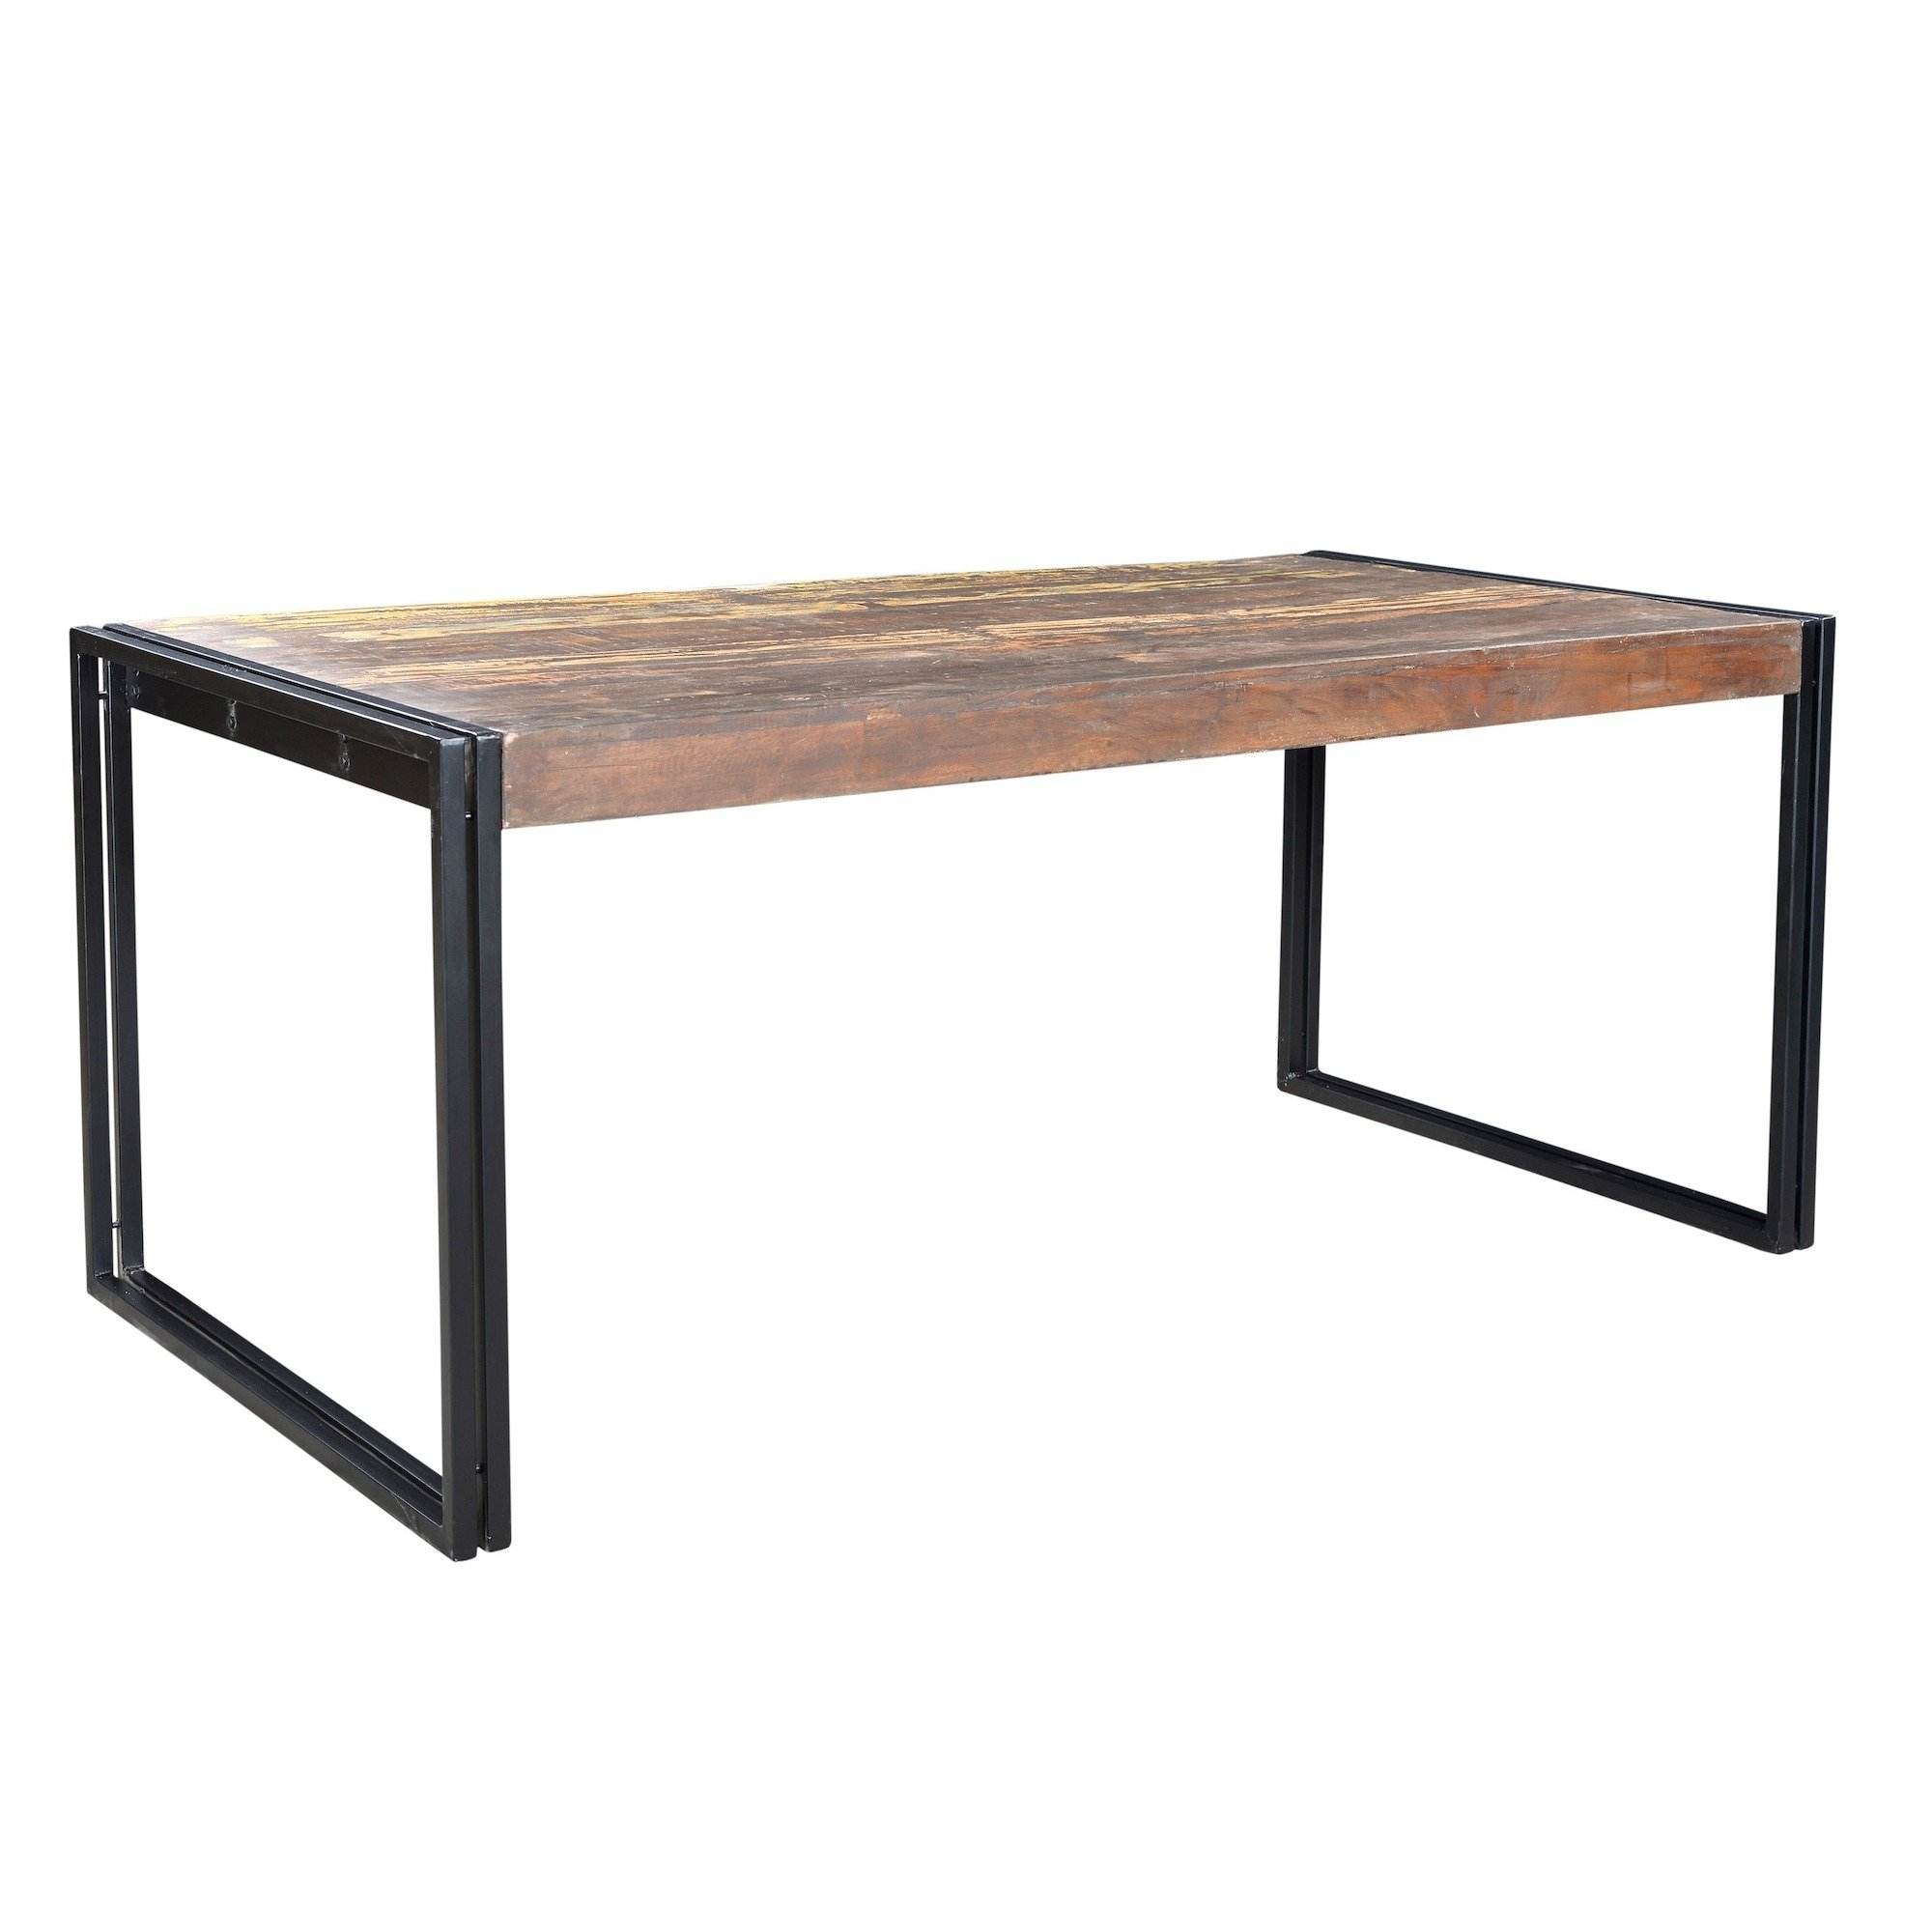 Shop Handmade Timbergirl Old Reclaimed Wood Dining Table With Iron Within Best And Newest Iron And Wood Dining Tables (View 19 of 20)